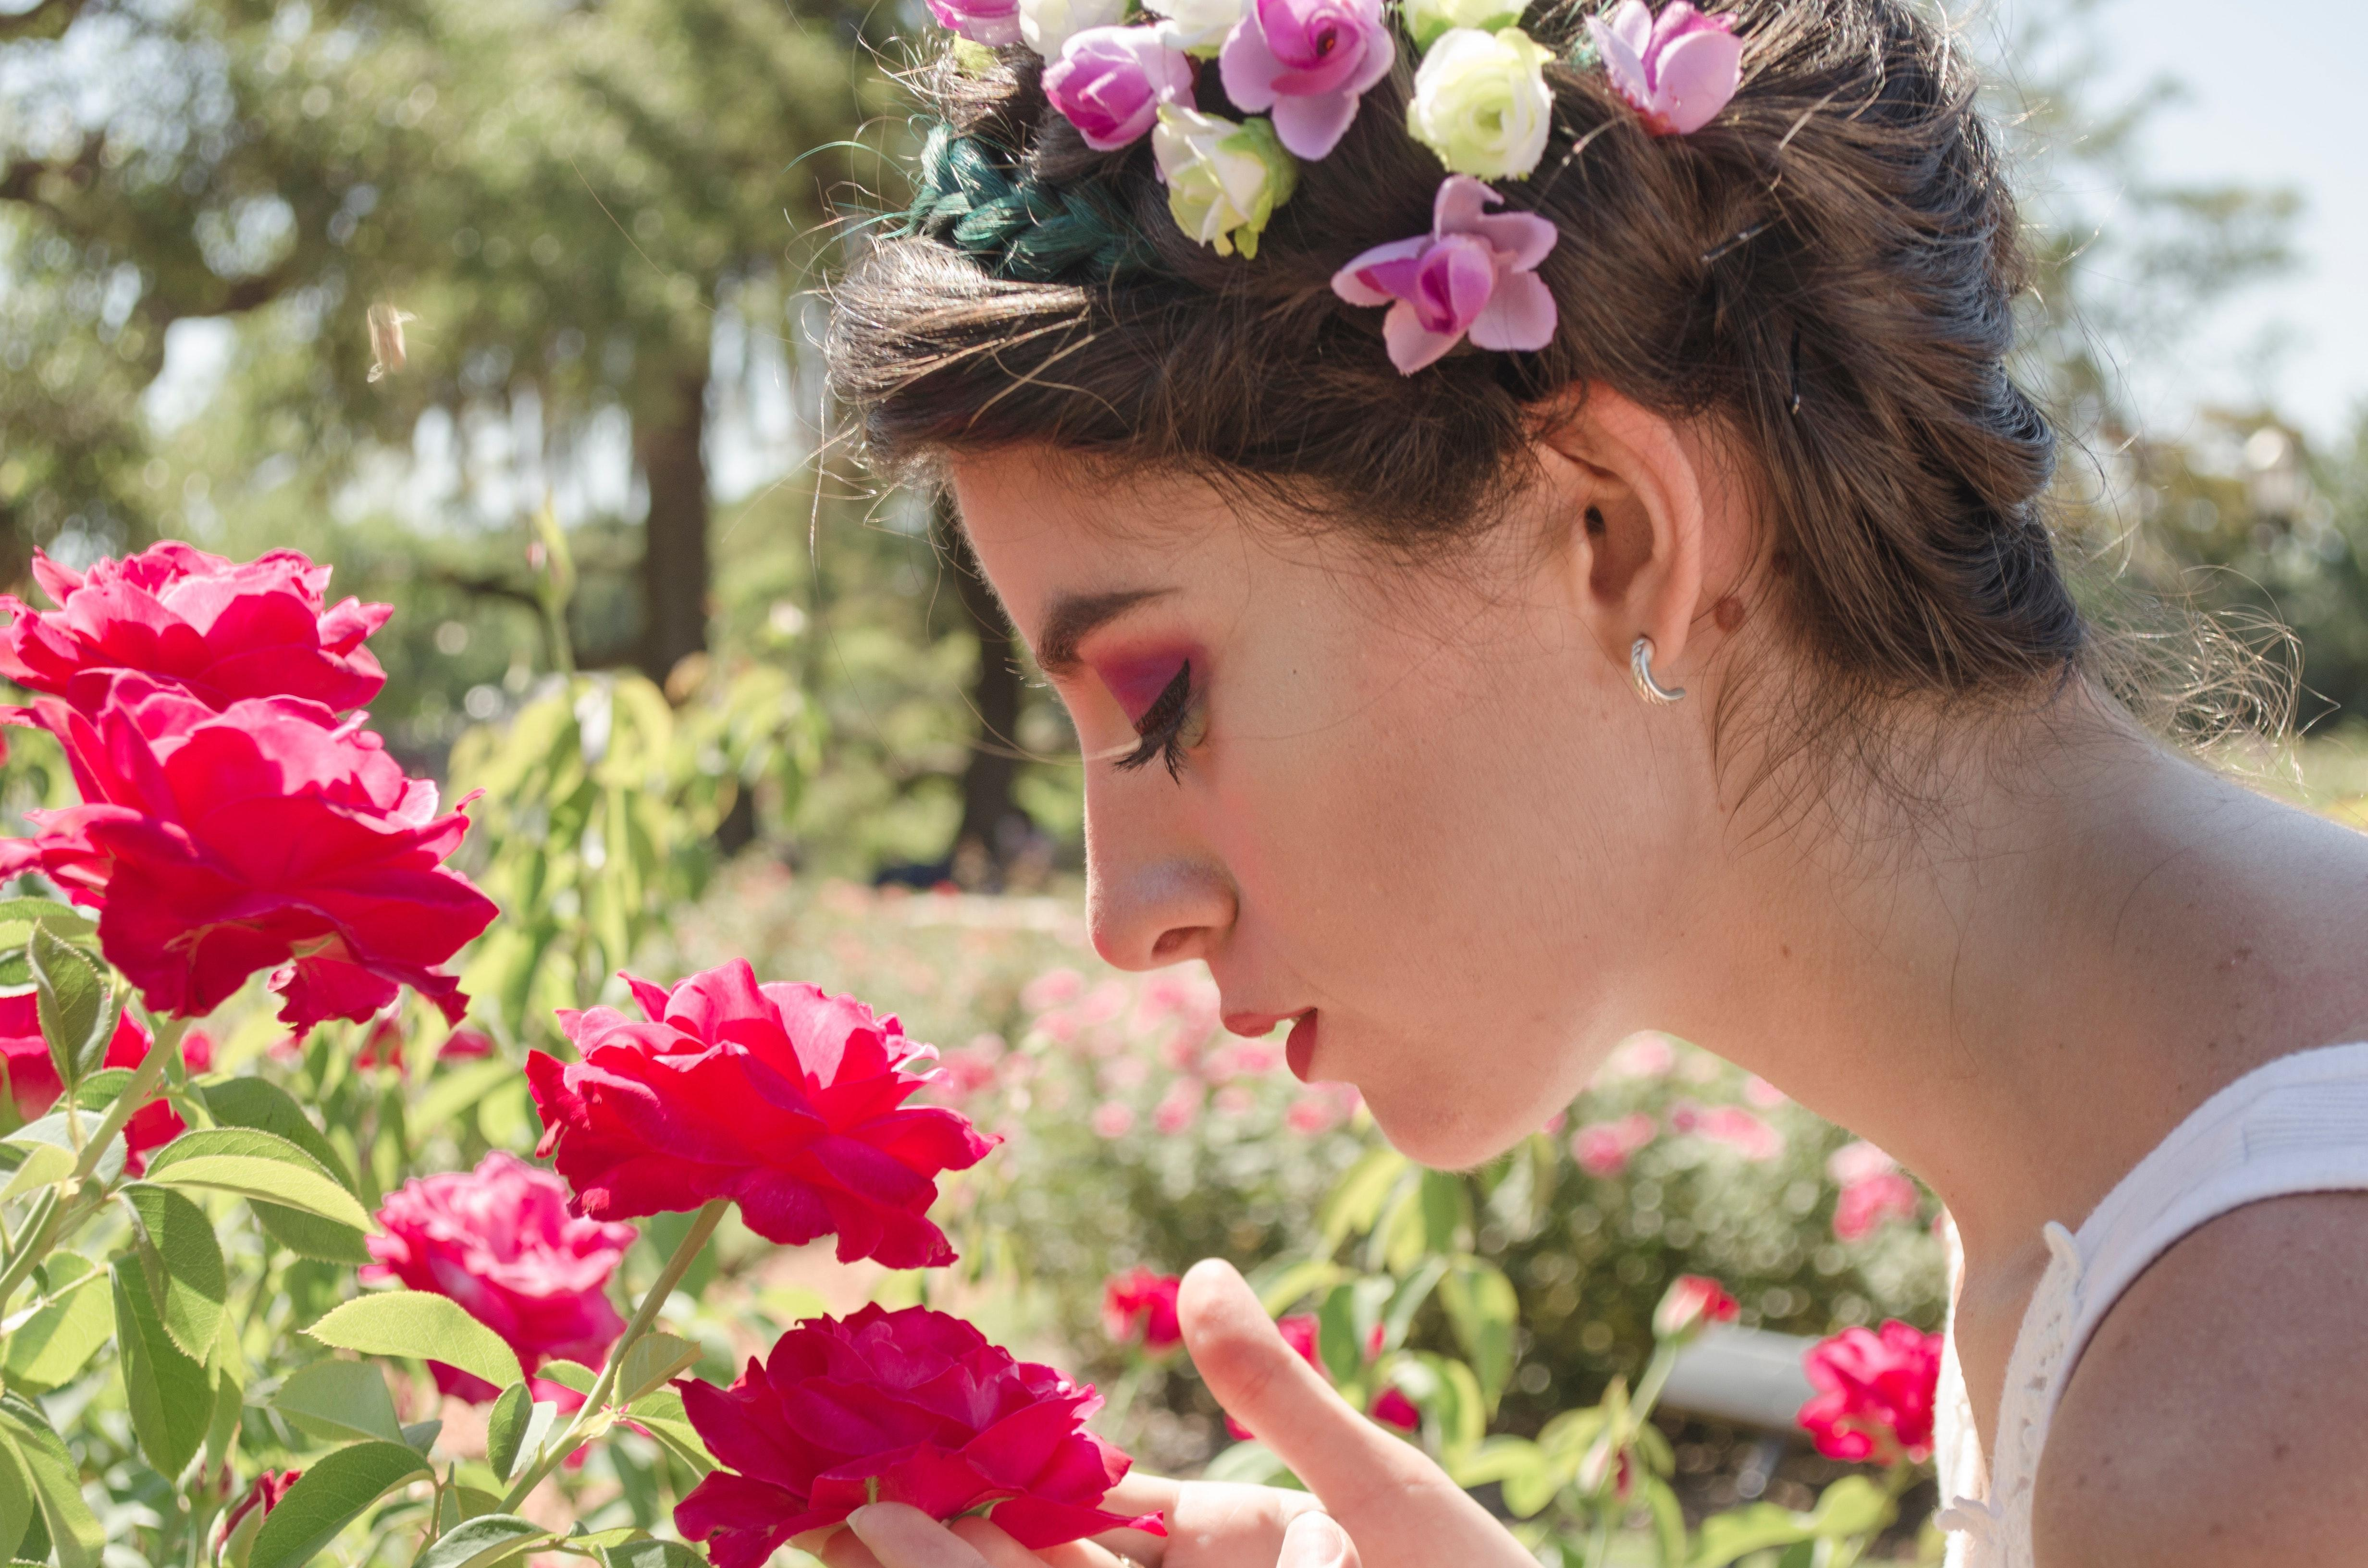 flowers and plants for skincare and haircare